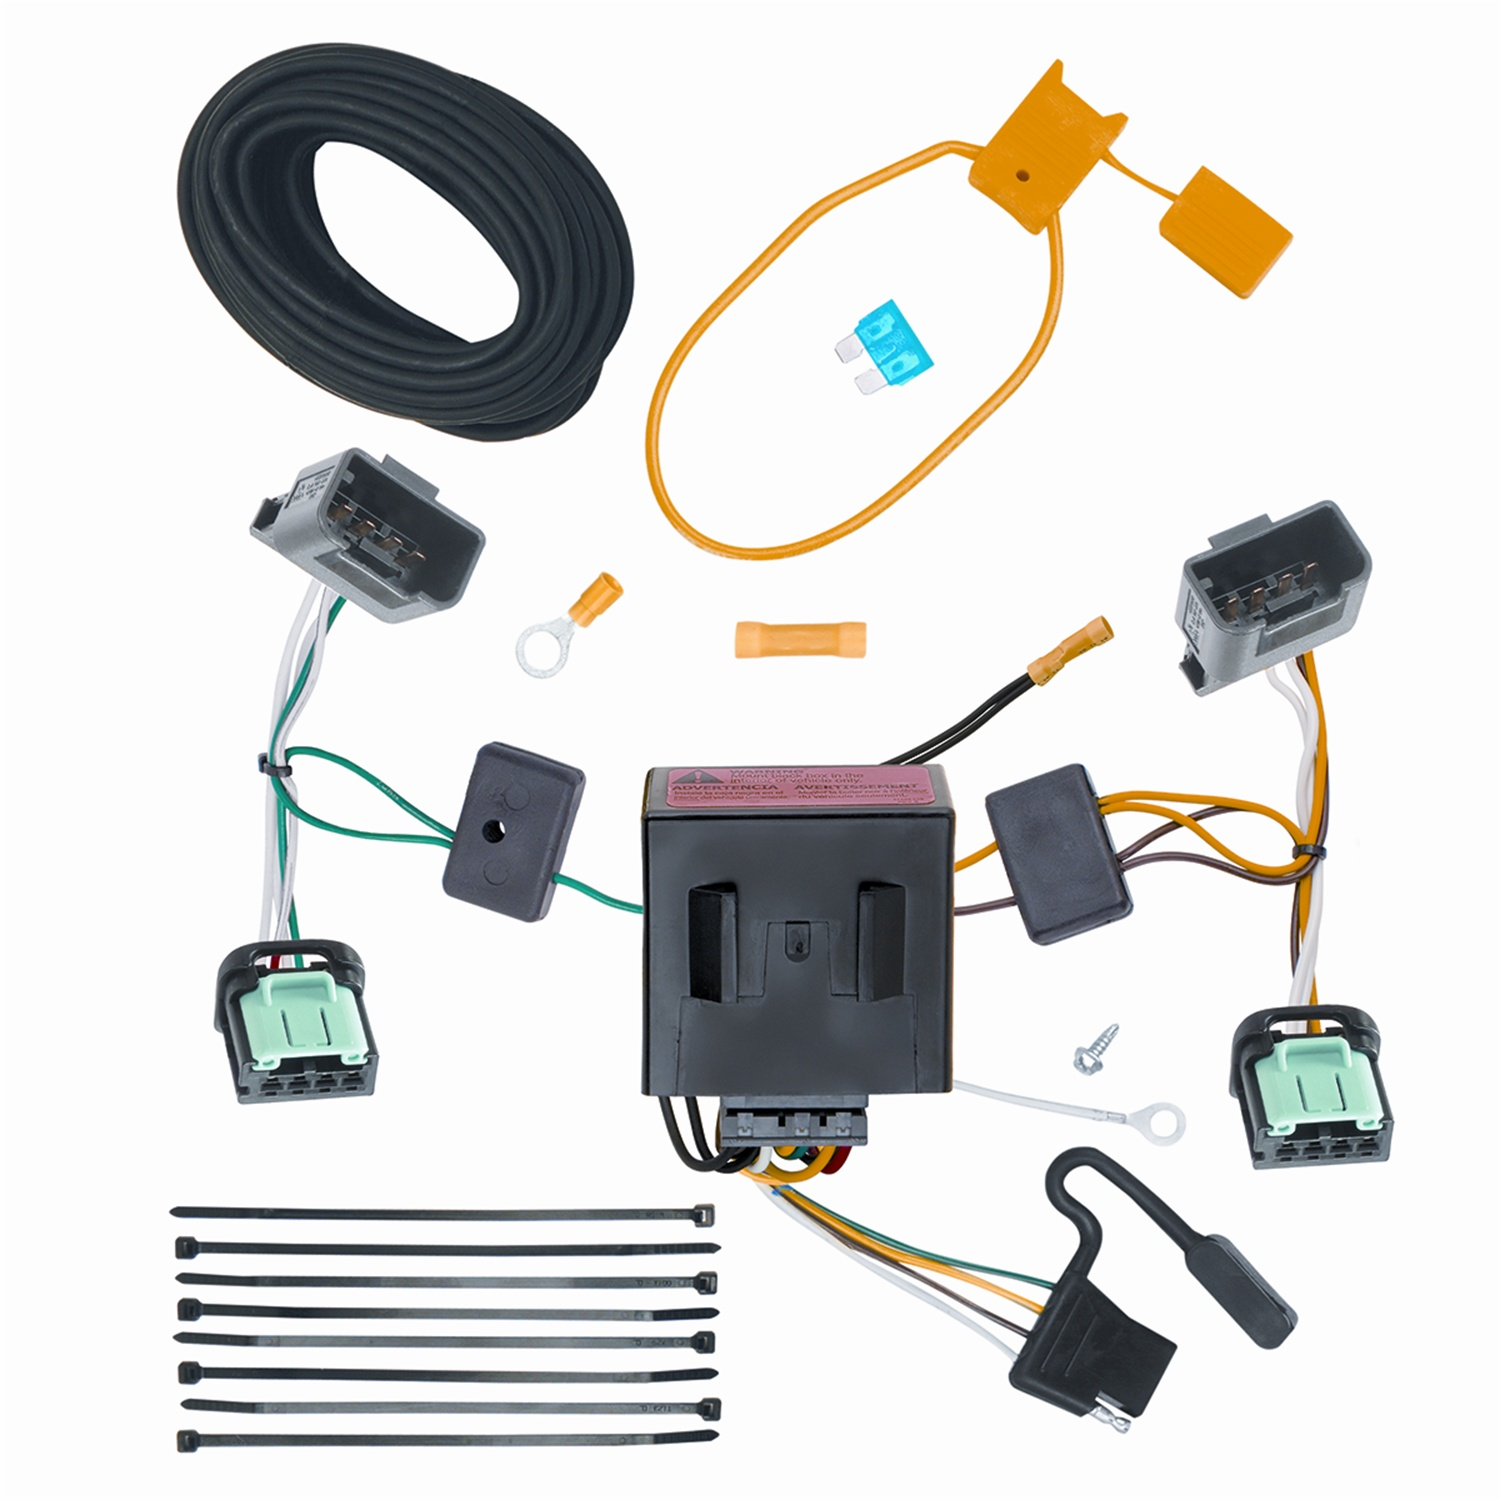 Trailer Wiring Harness Connectors Electrical Diagram Schematics Boat Flat 4 Vehicle To Connector 118531 For 05 10 Vw 5 Pin Plug